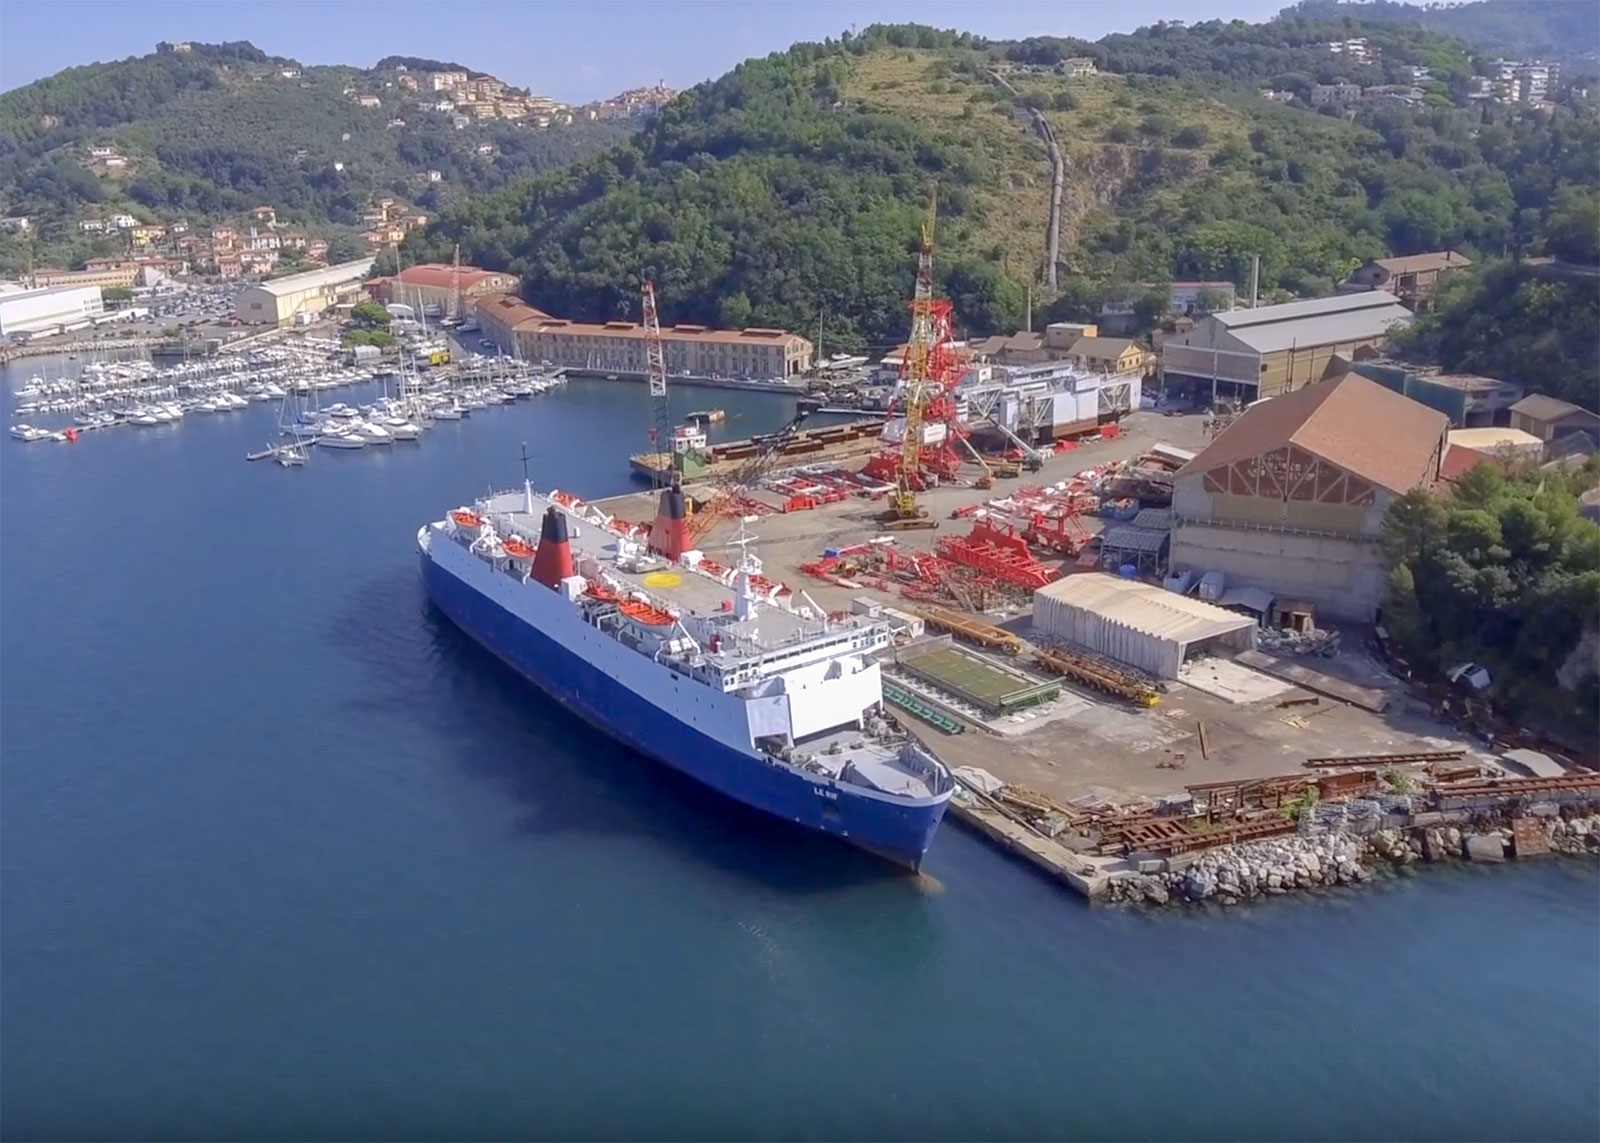 LE RIF nearing the end of her refurbishment during 2018 at Jobson Italia's Naples yard. Copyright © Jobson Italia (Screen grab from video).